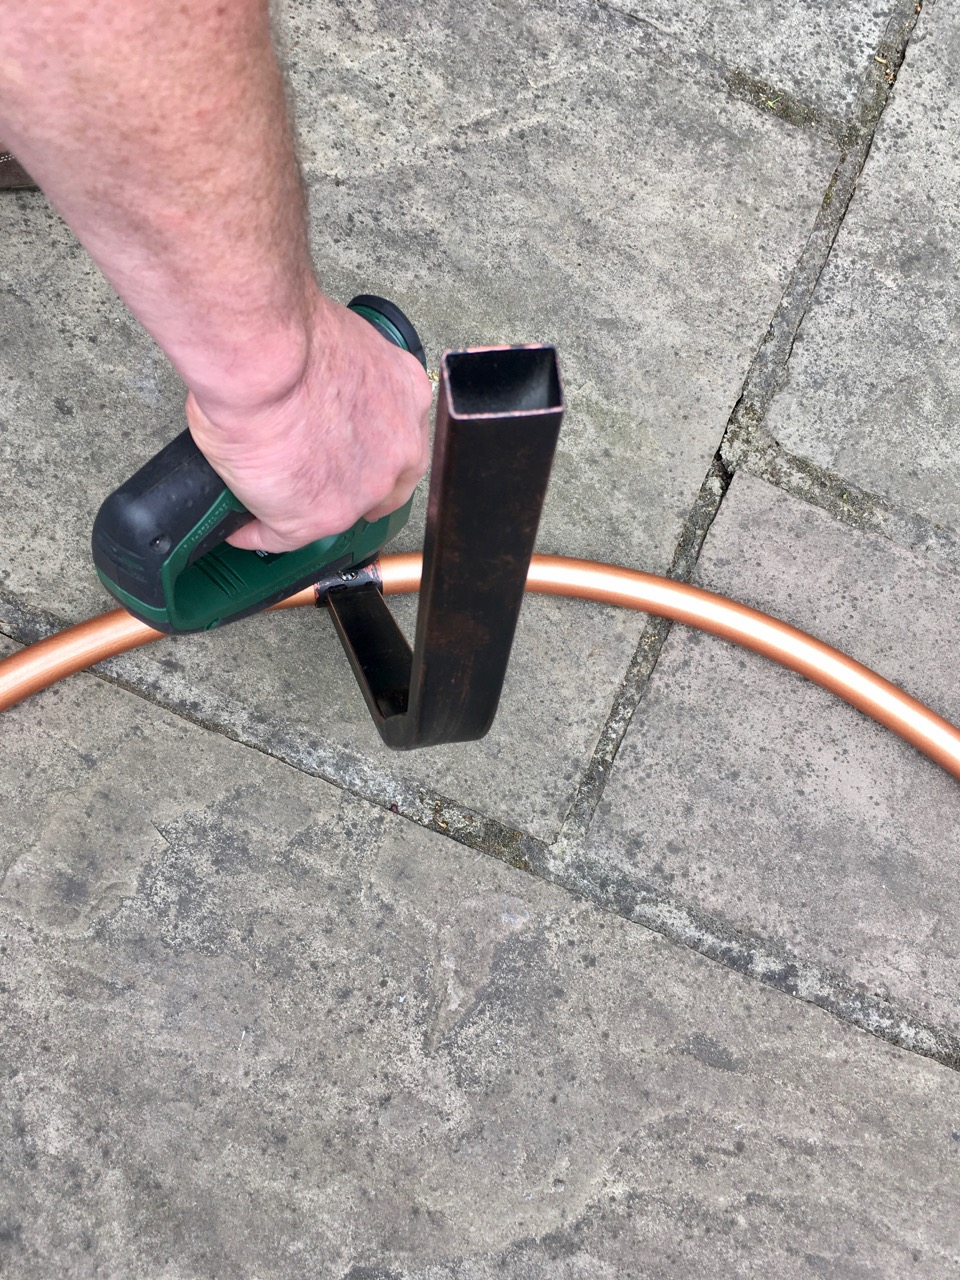 assembling the outer copper ring and attaching the legs